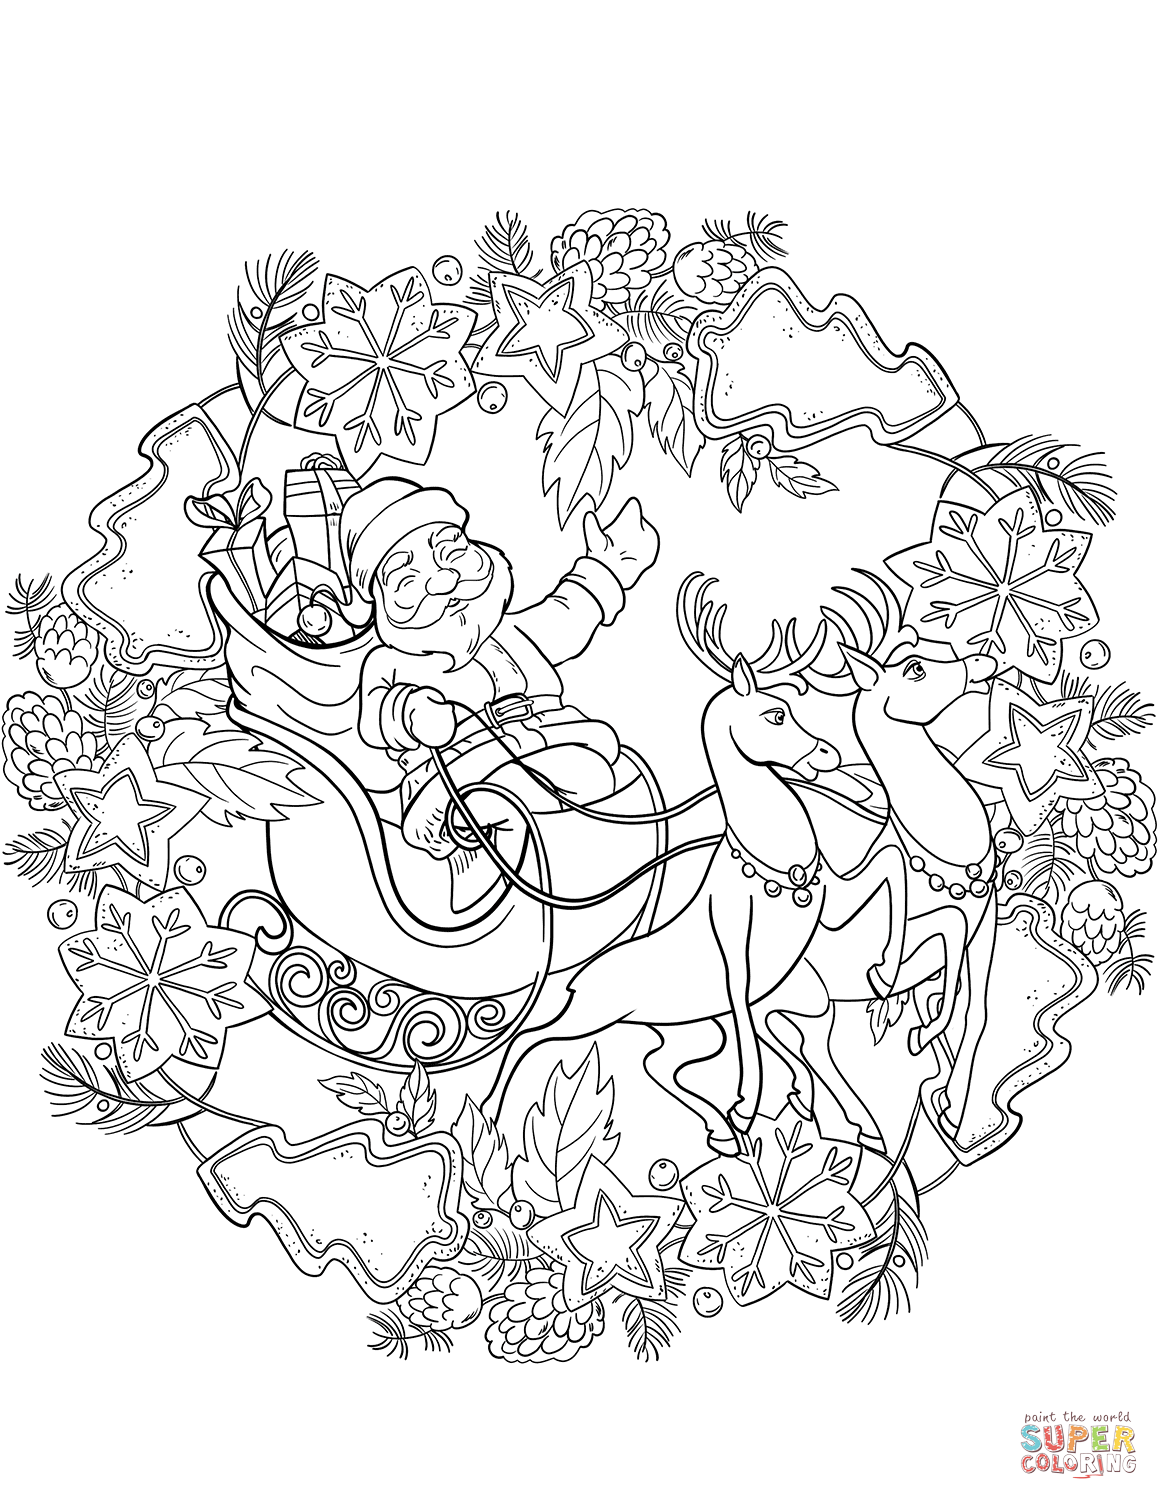 Santa Claus In Sleigh Coloring Pages